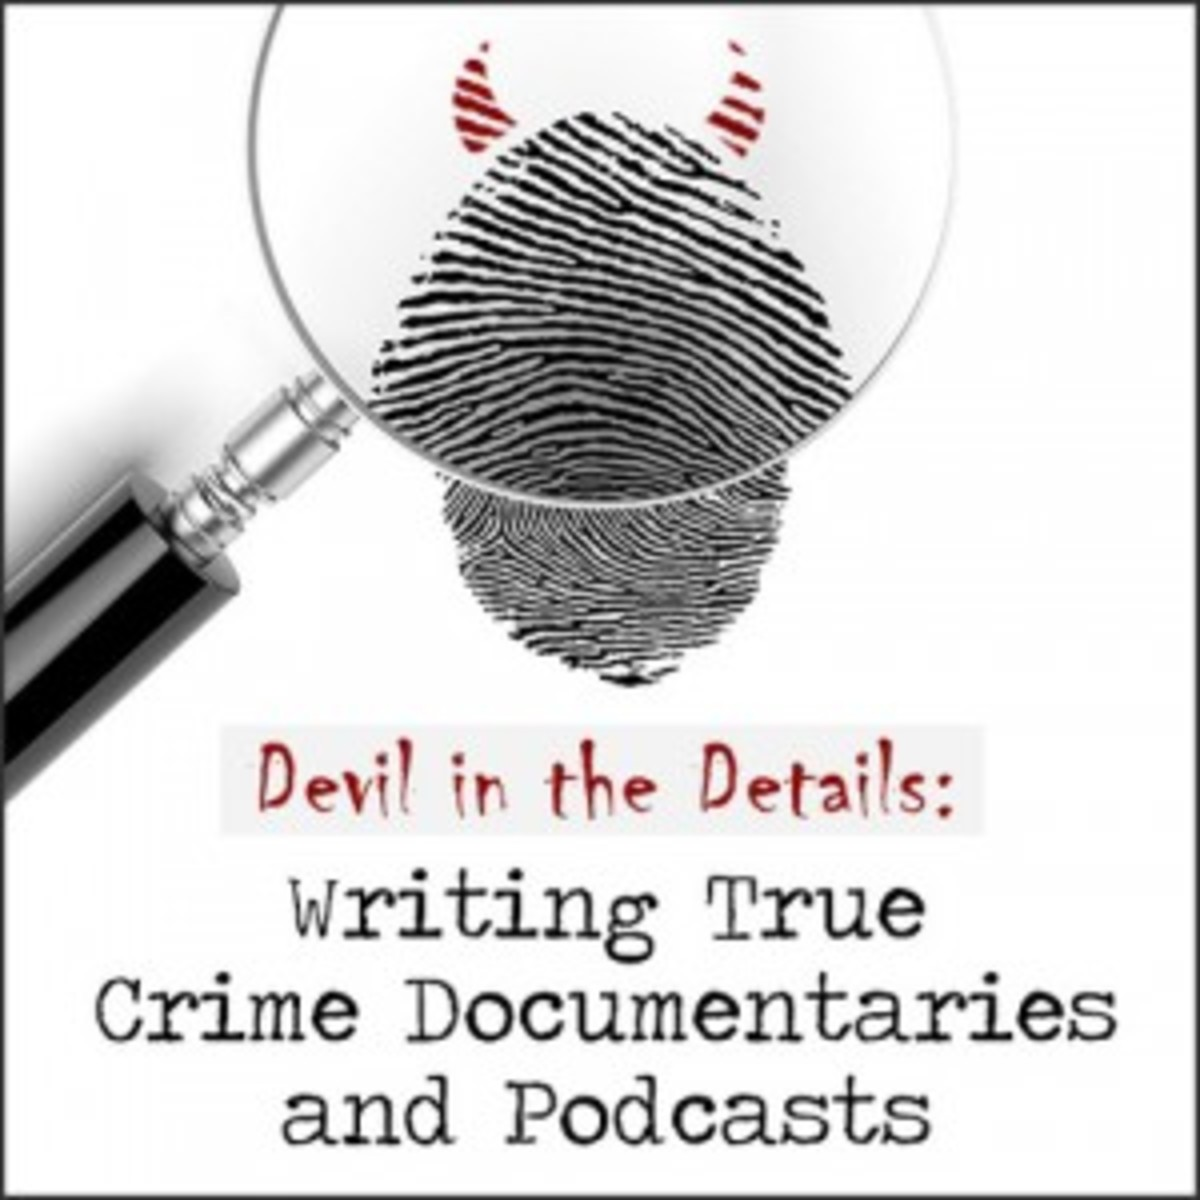 ws-devildetails-crimedocumentaries-500_medium